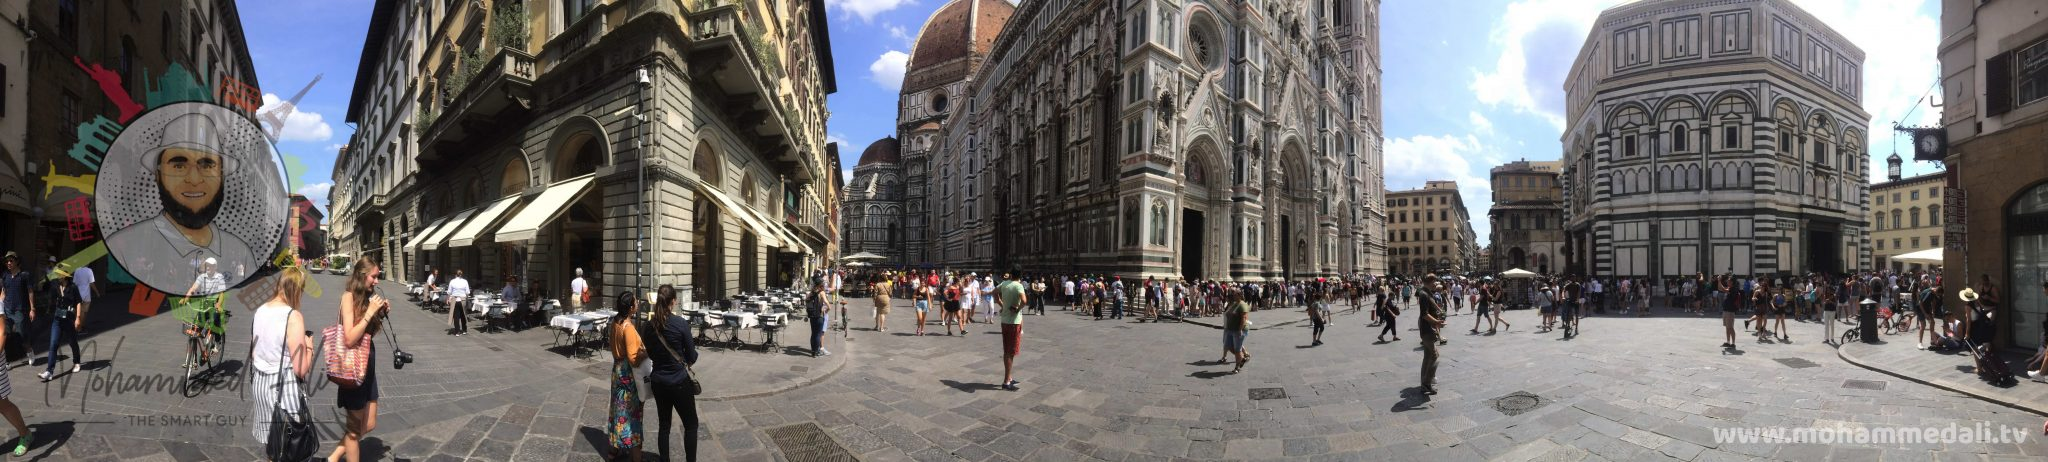 Wonderful panoramic view of Piazza del Duomo in Florence